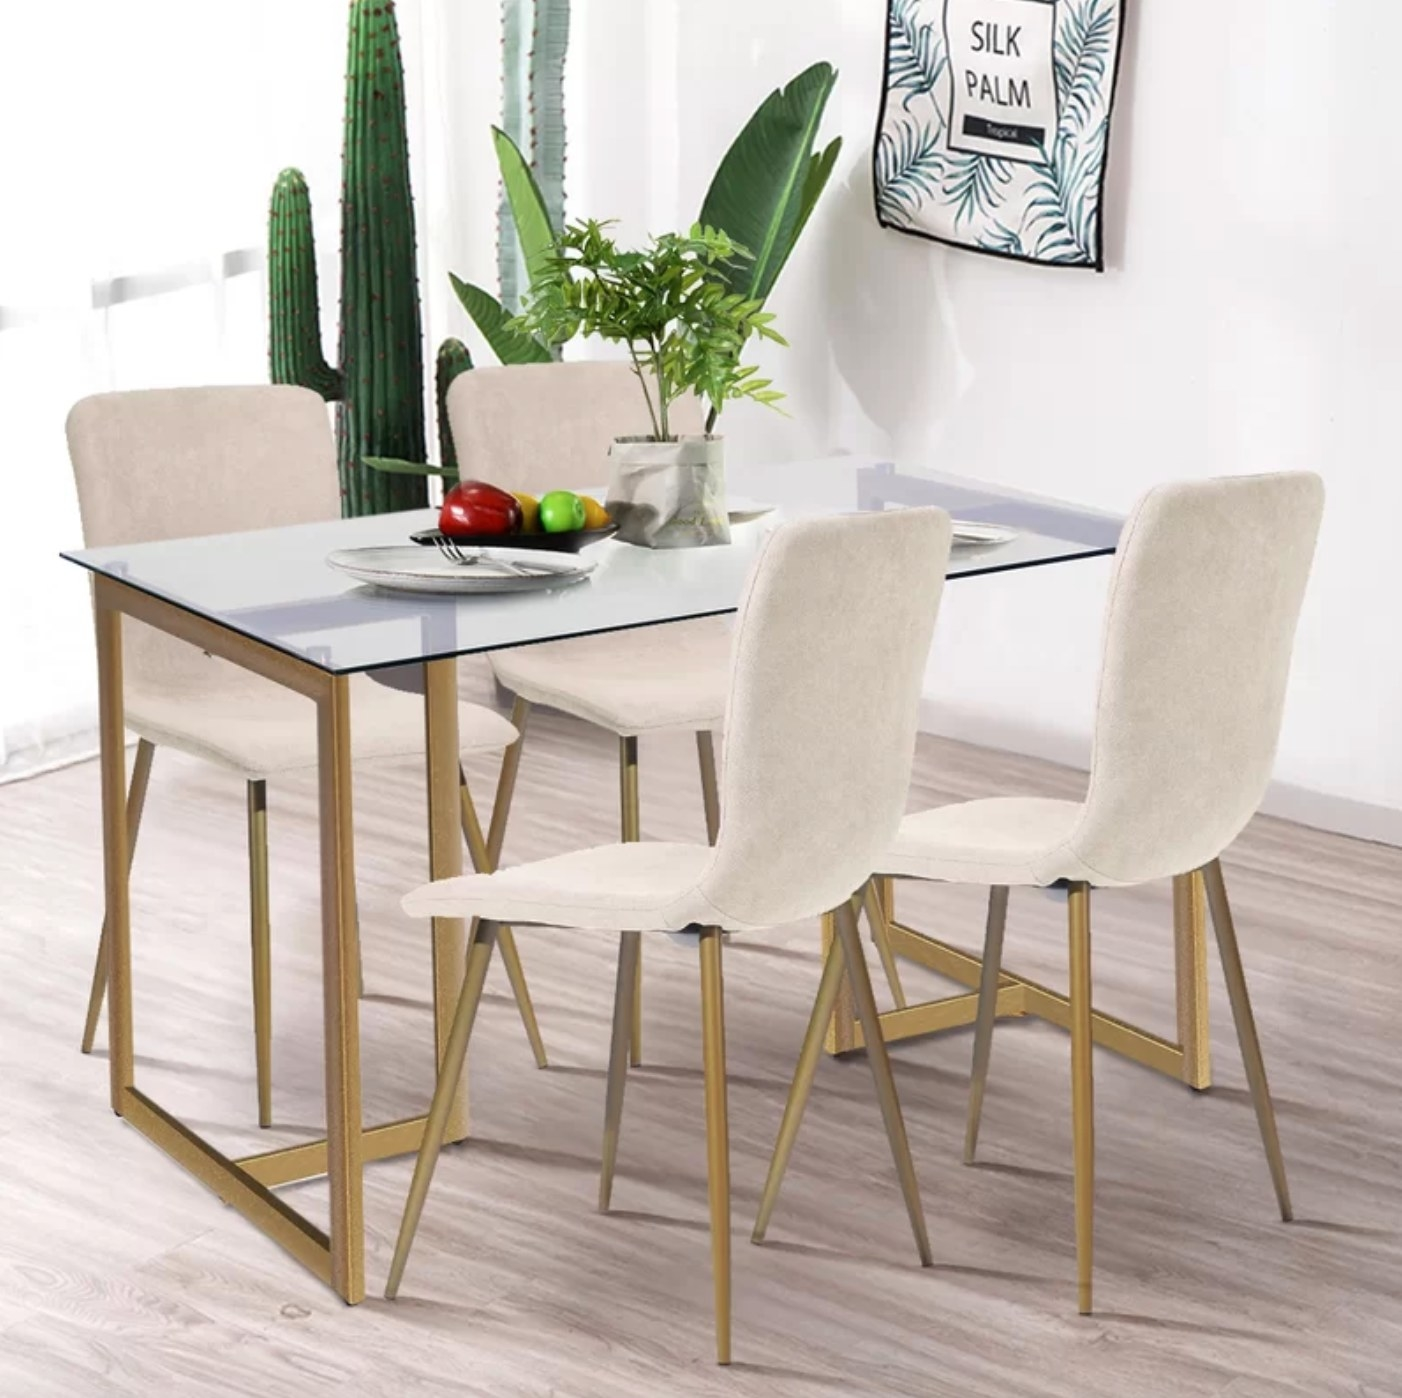 The five-piece dining set in beige